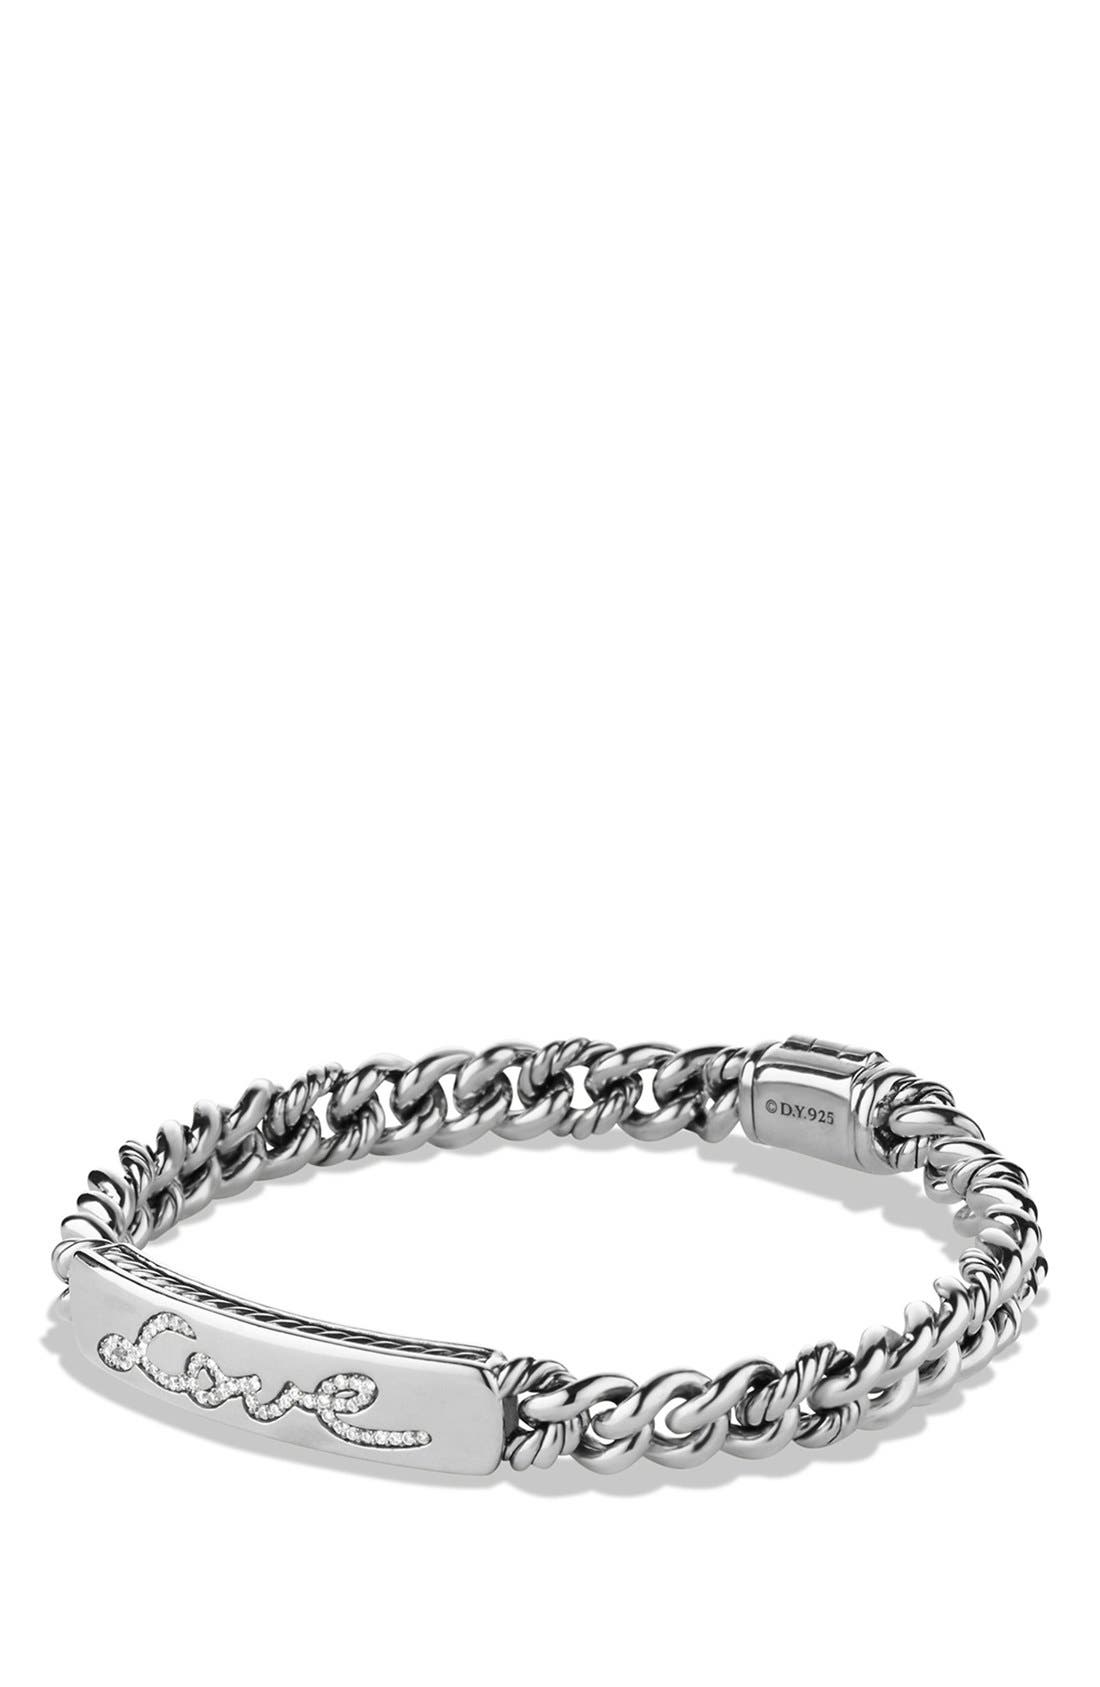 David Yurman 'Petite Pavé' Love ID Bracelet with Diamonds